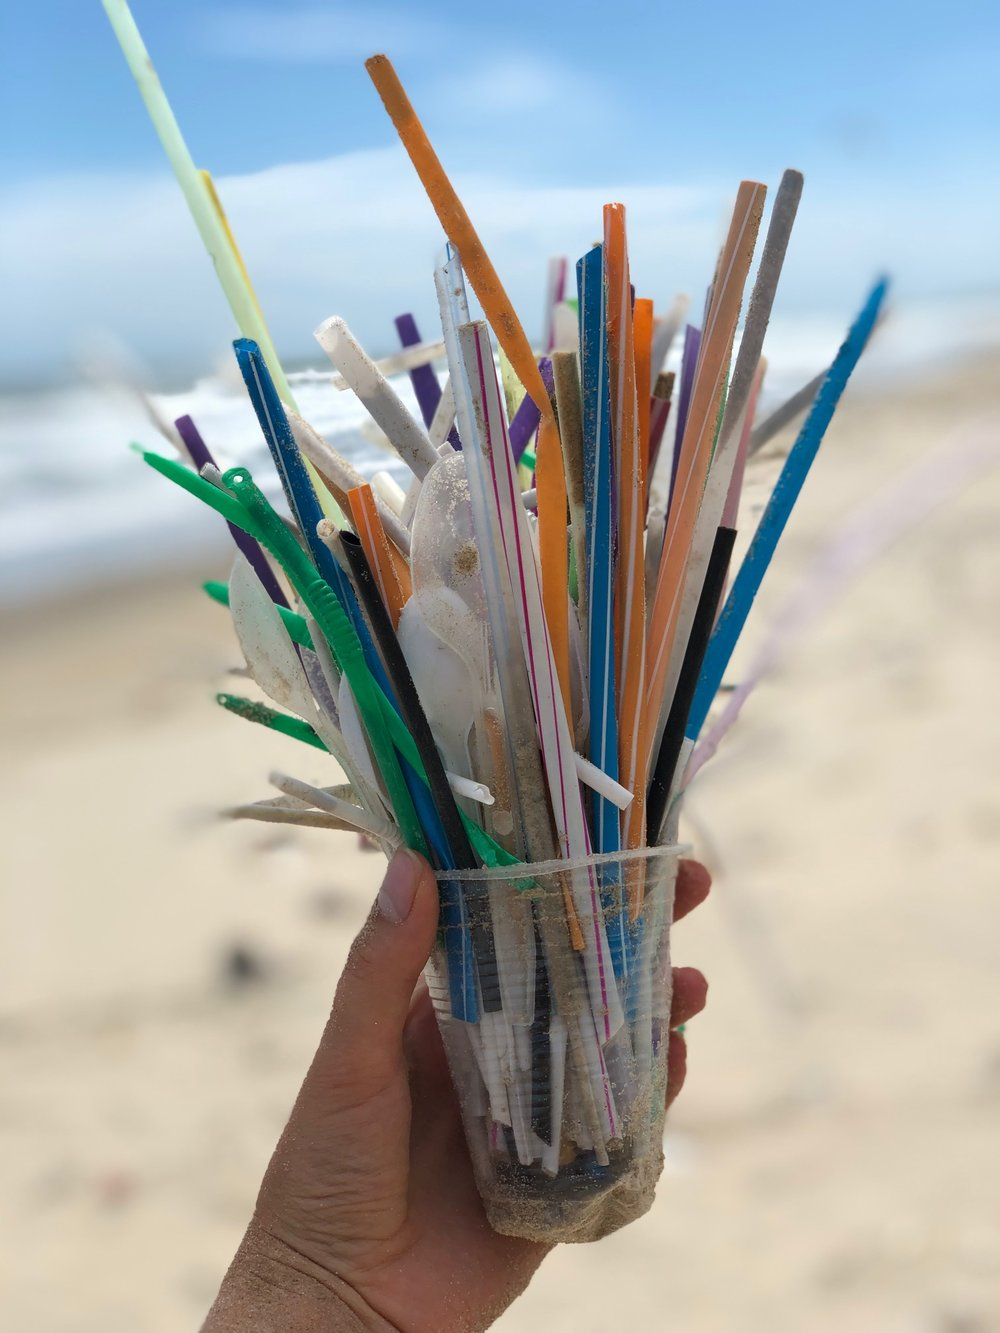 Single Use Plastic is destroying the places we love! Opt for more eco-minded alternatives when at home and traveling!